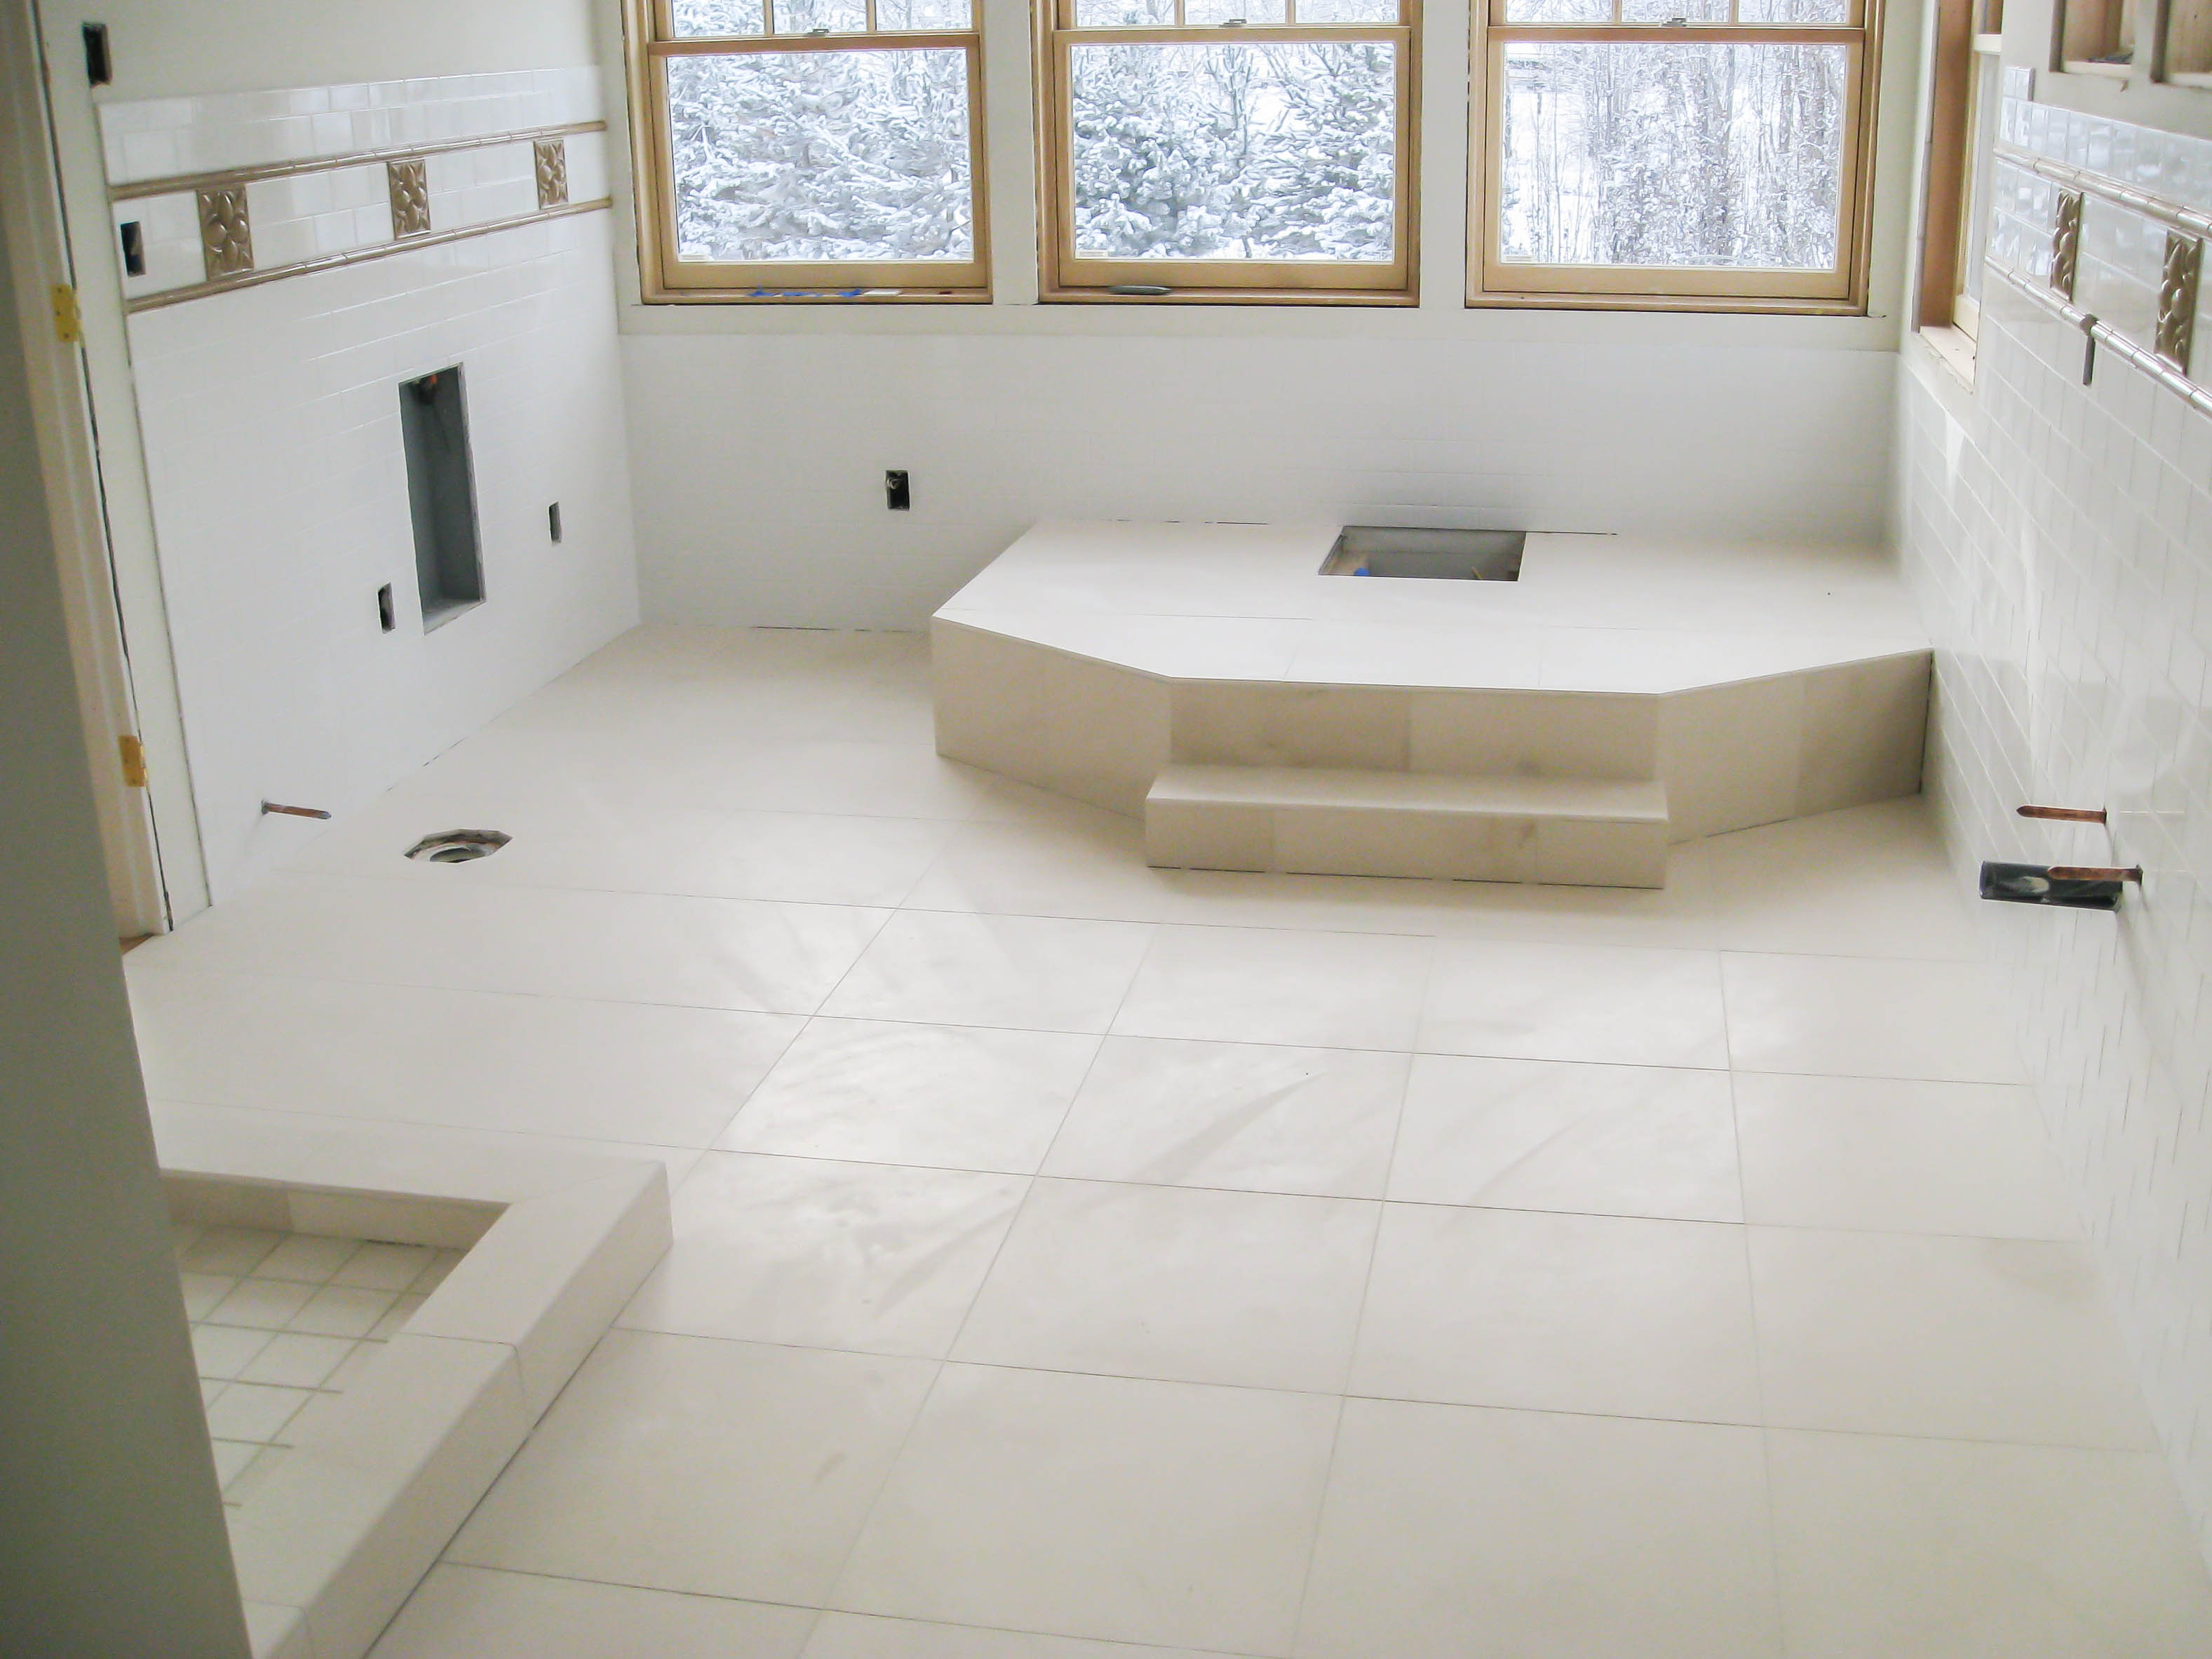 Bathroom Floors - Seattle Tile Contractor | IRC Tile Services | title